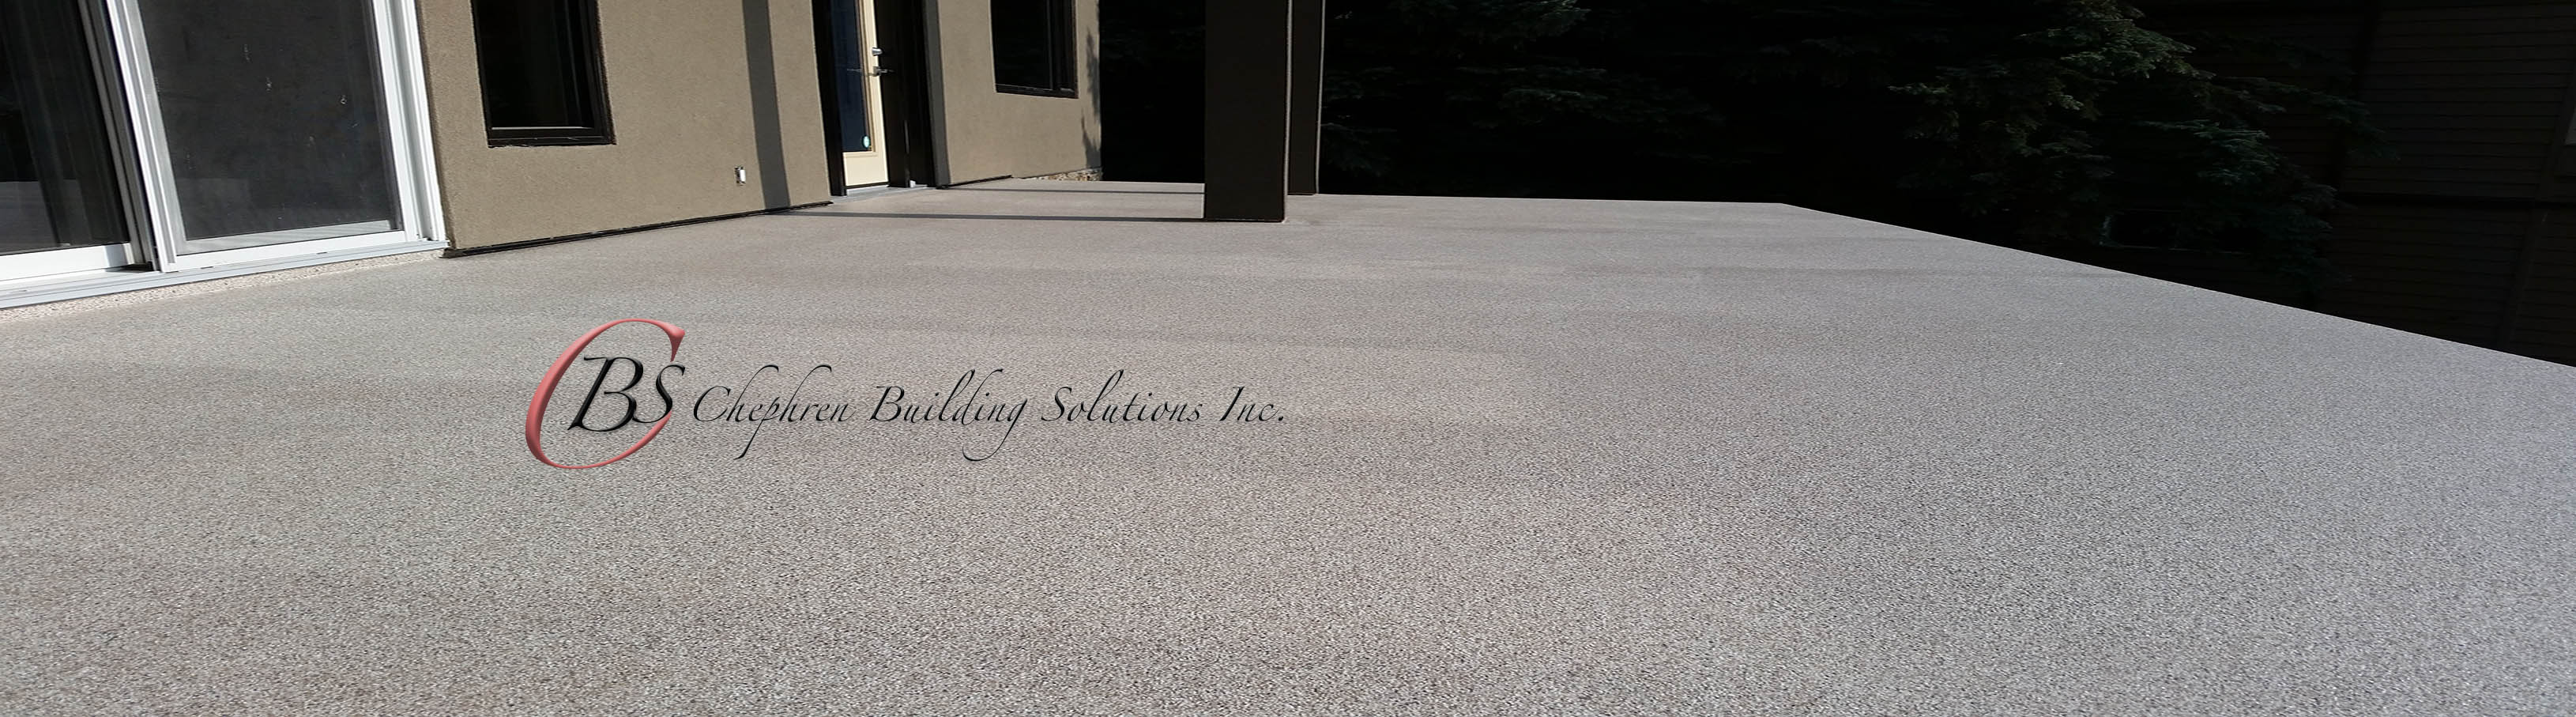 Roof Deck coated with flexstone